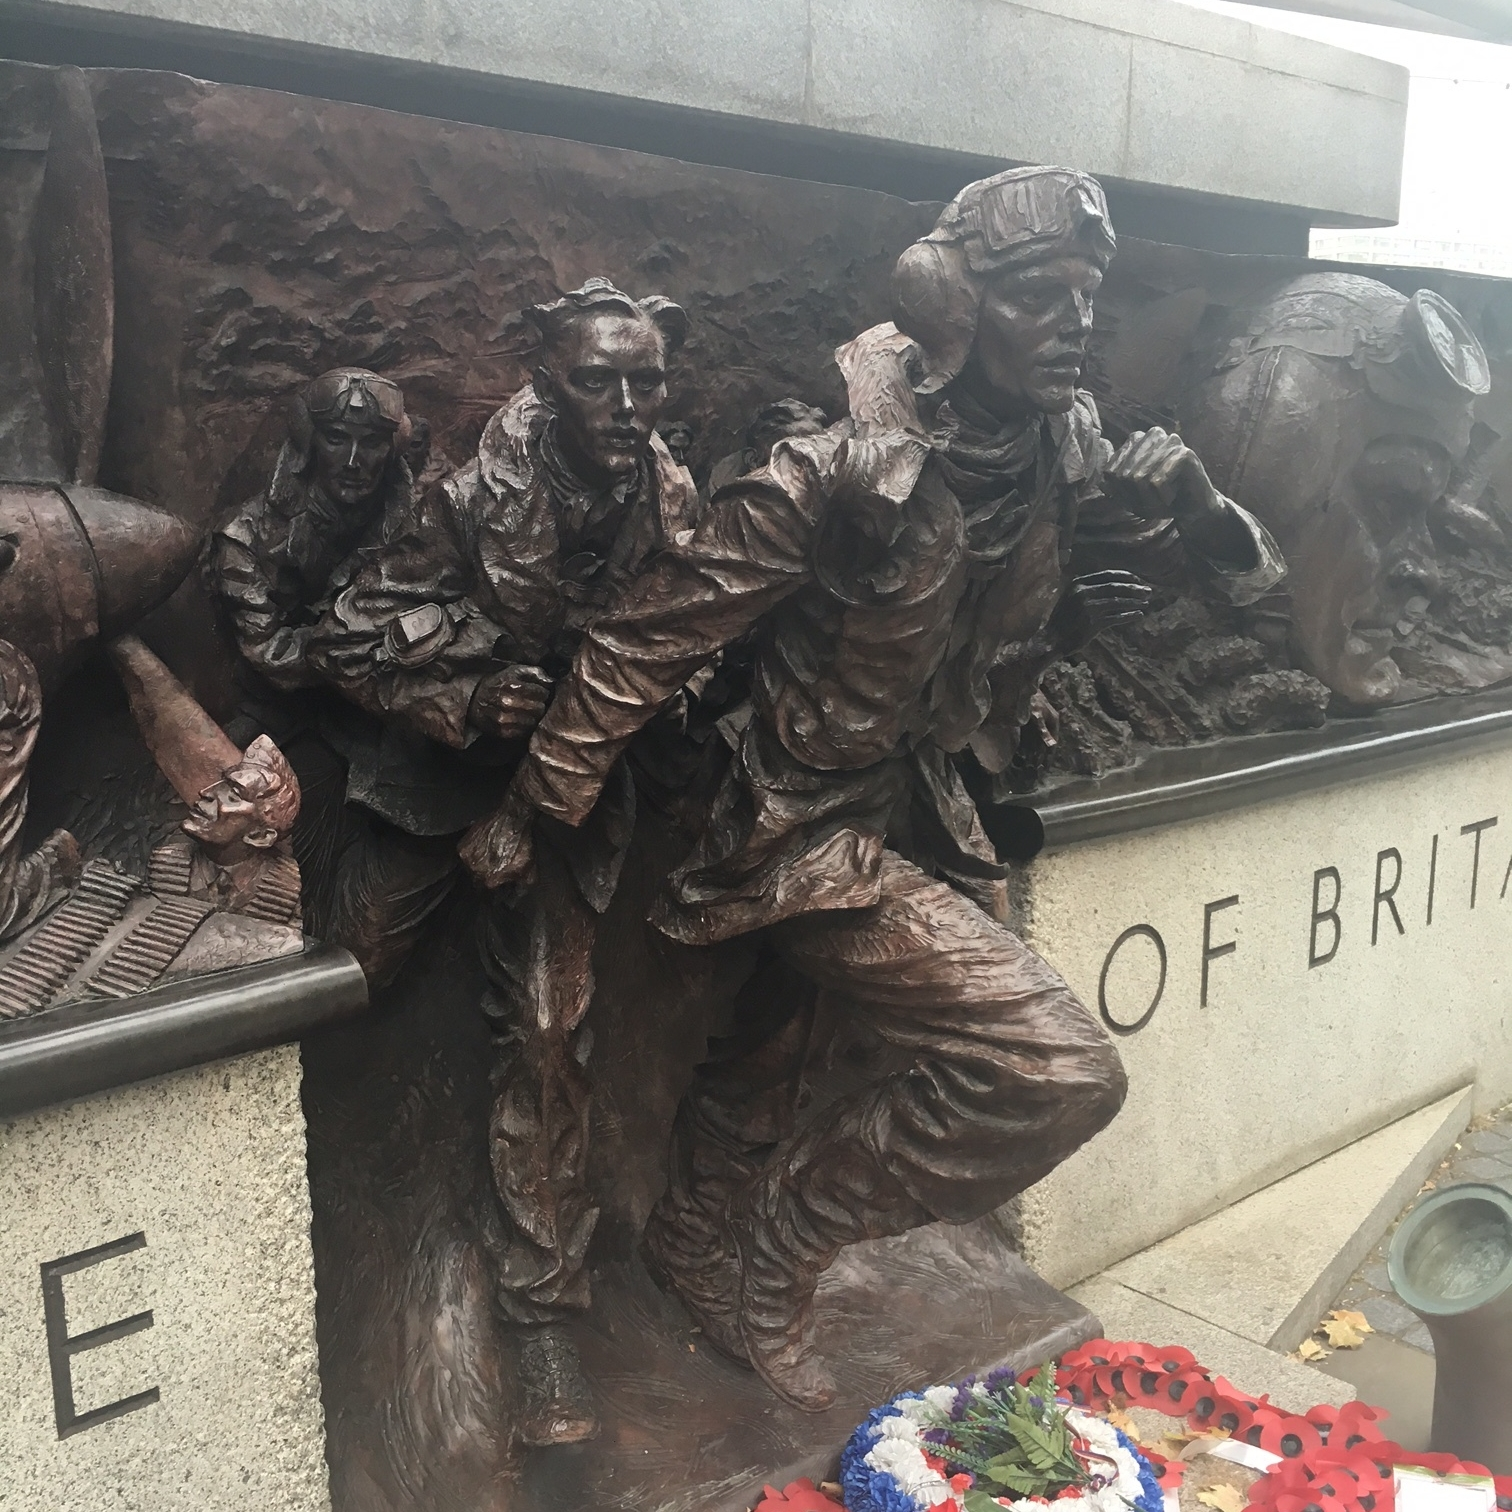 Battle of Britain memorial, London by The Doubtful Traveller